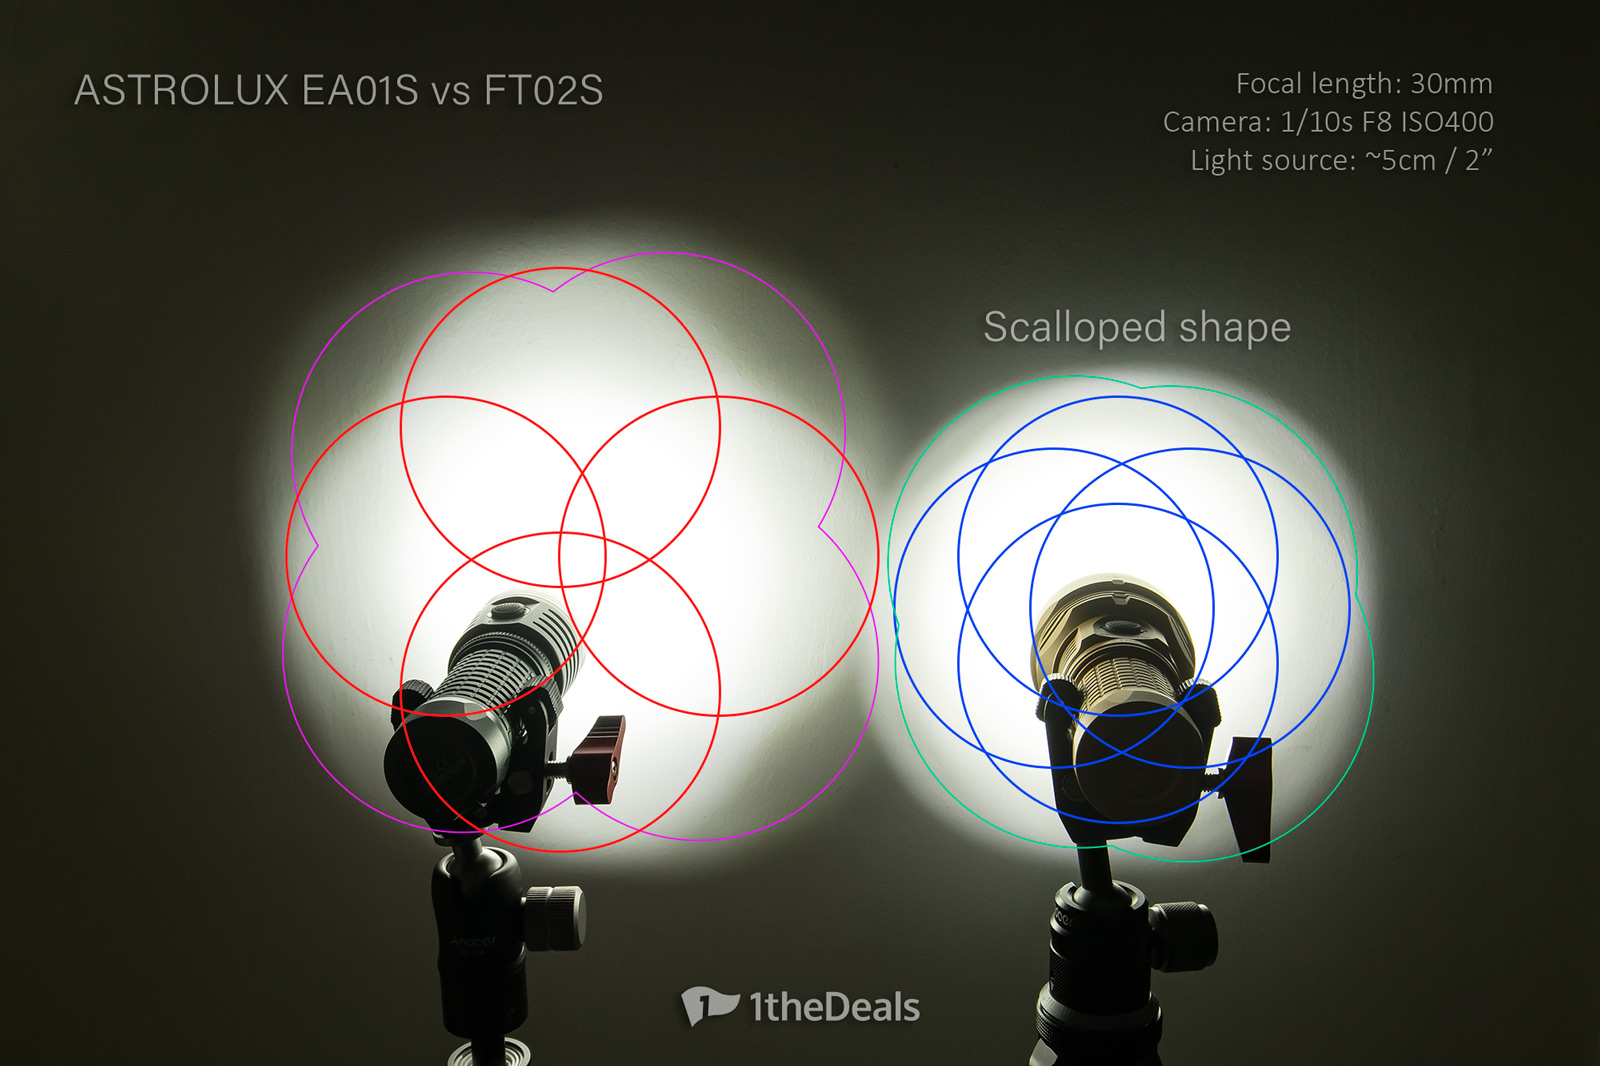 1thedeals-1920x1080-beam-profile-Astrolux-EA01S_vs_FT01S-02.jpg